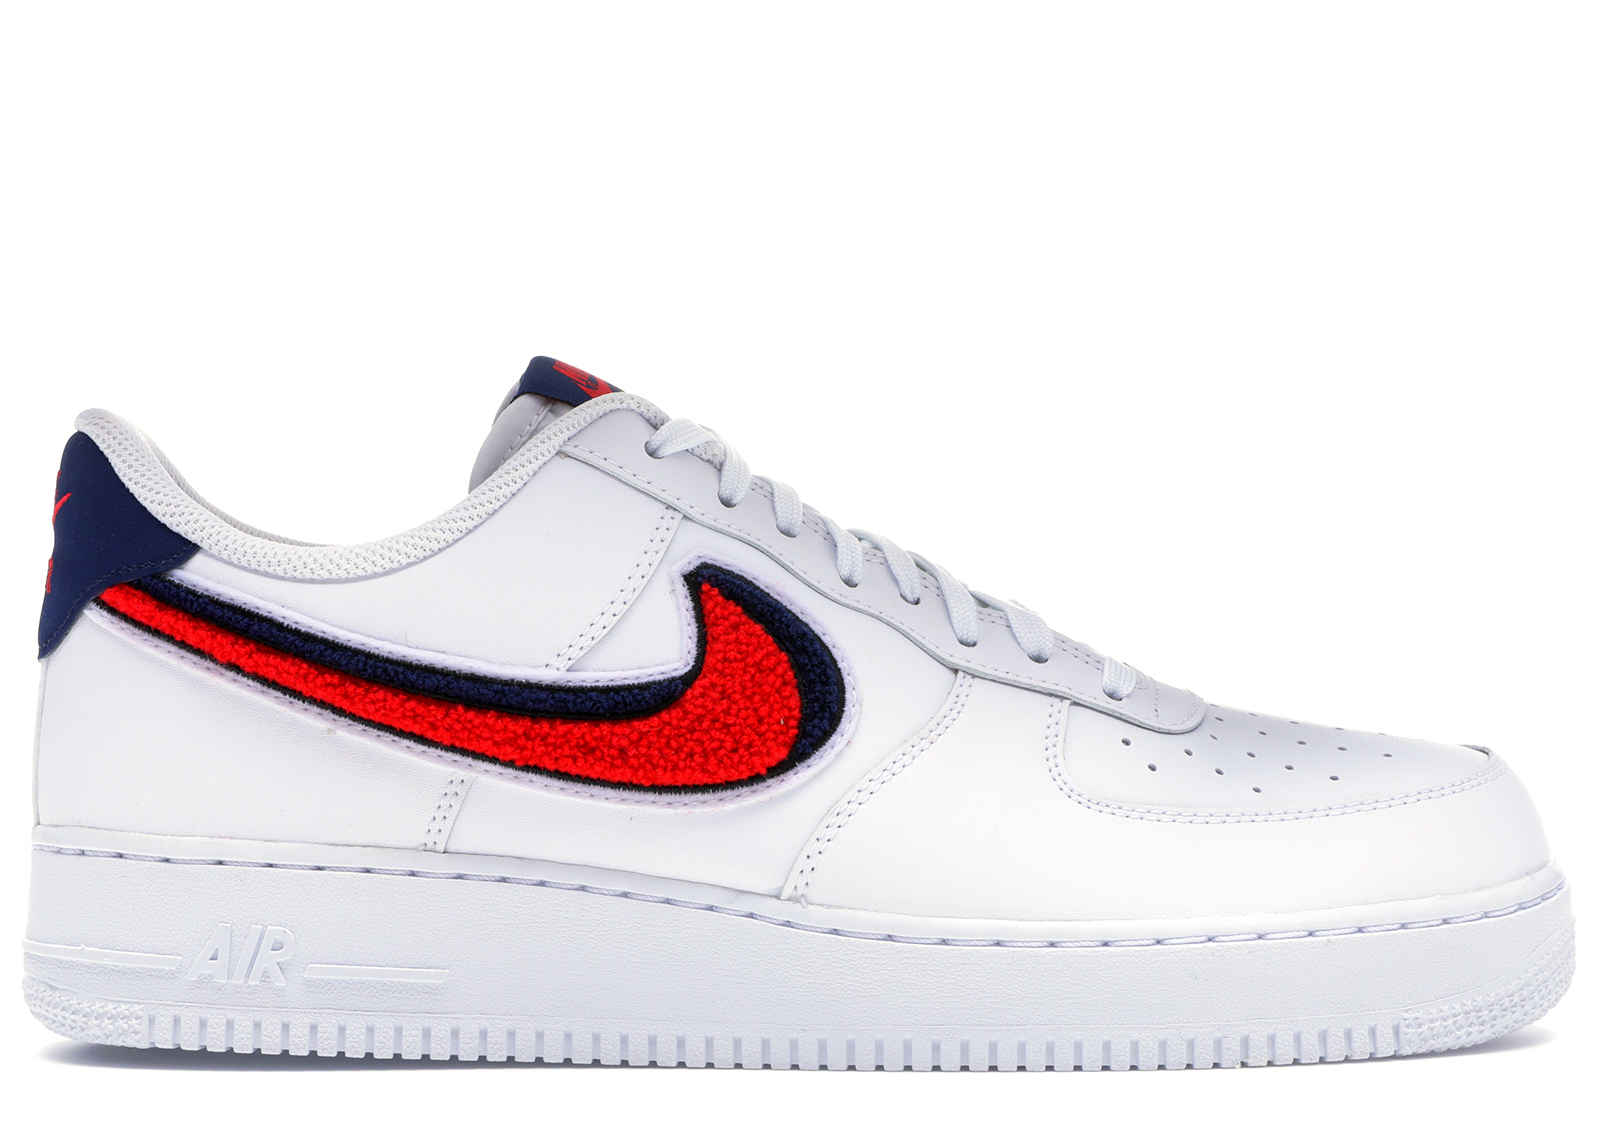 Nike Air Force 1 Low 3D Chenille White Red Blue